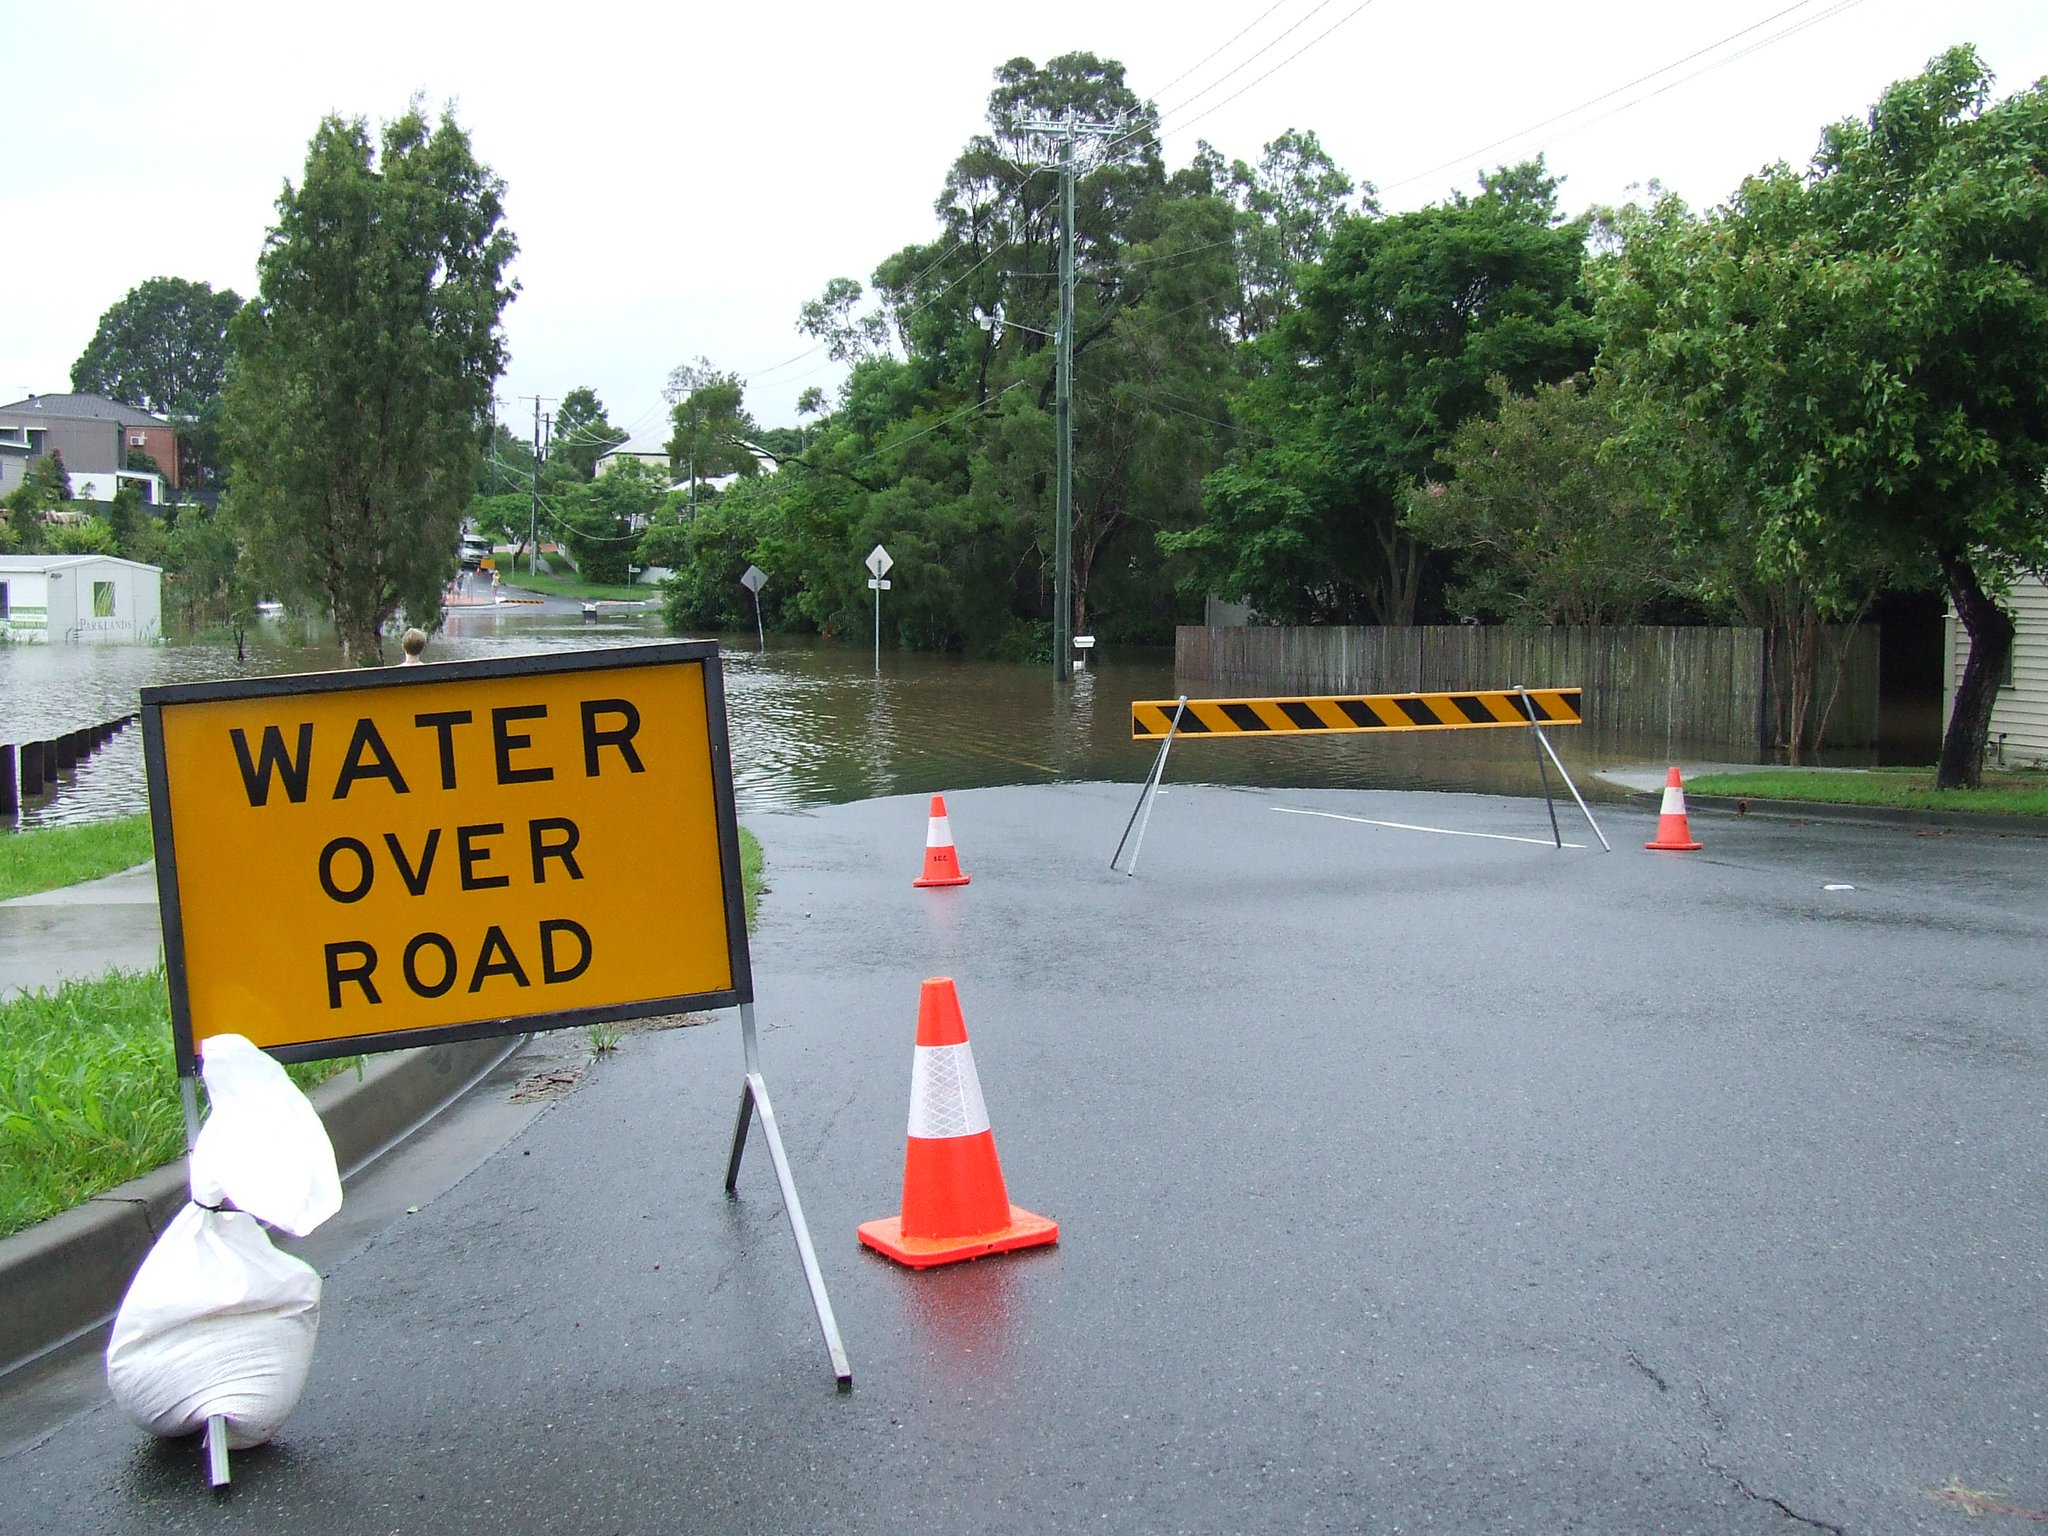 2011 Queensland Floods – Tuesday 11th January (part 1)